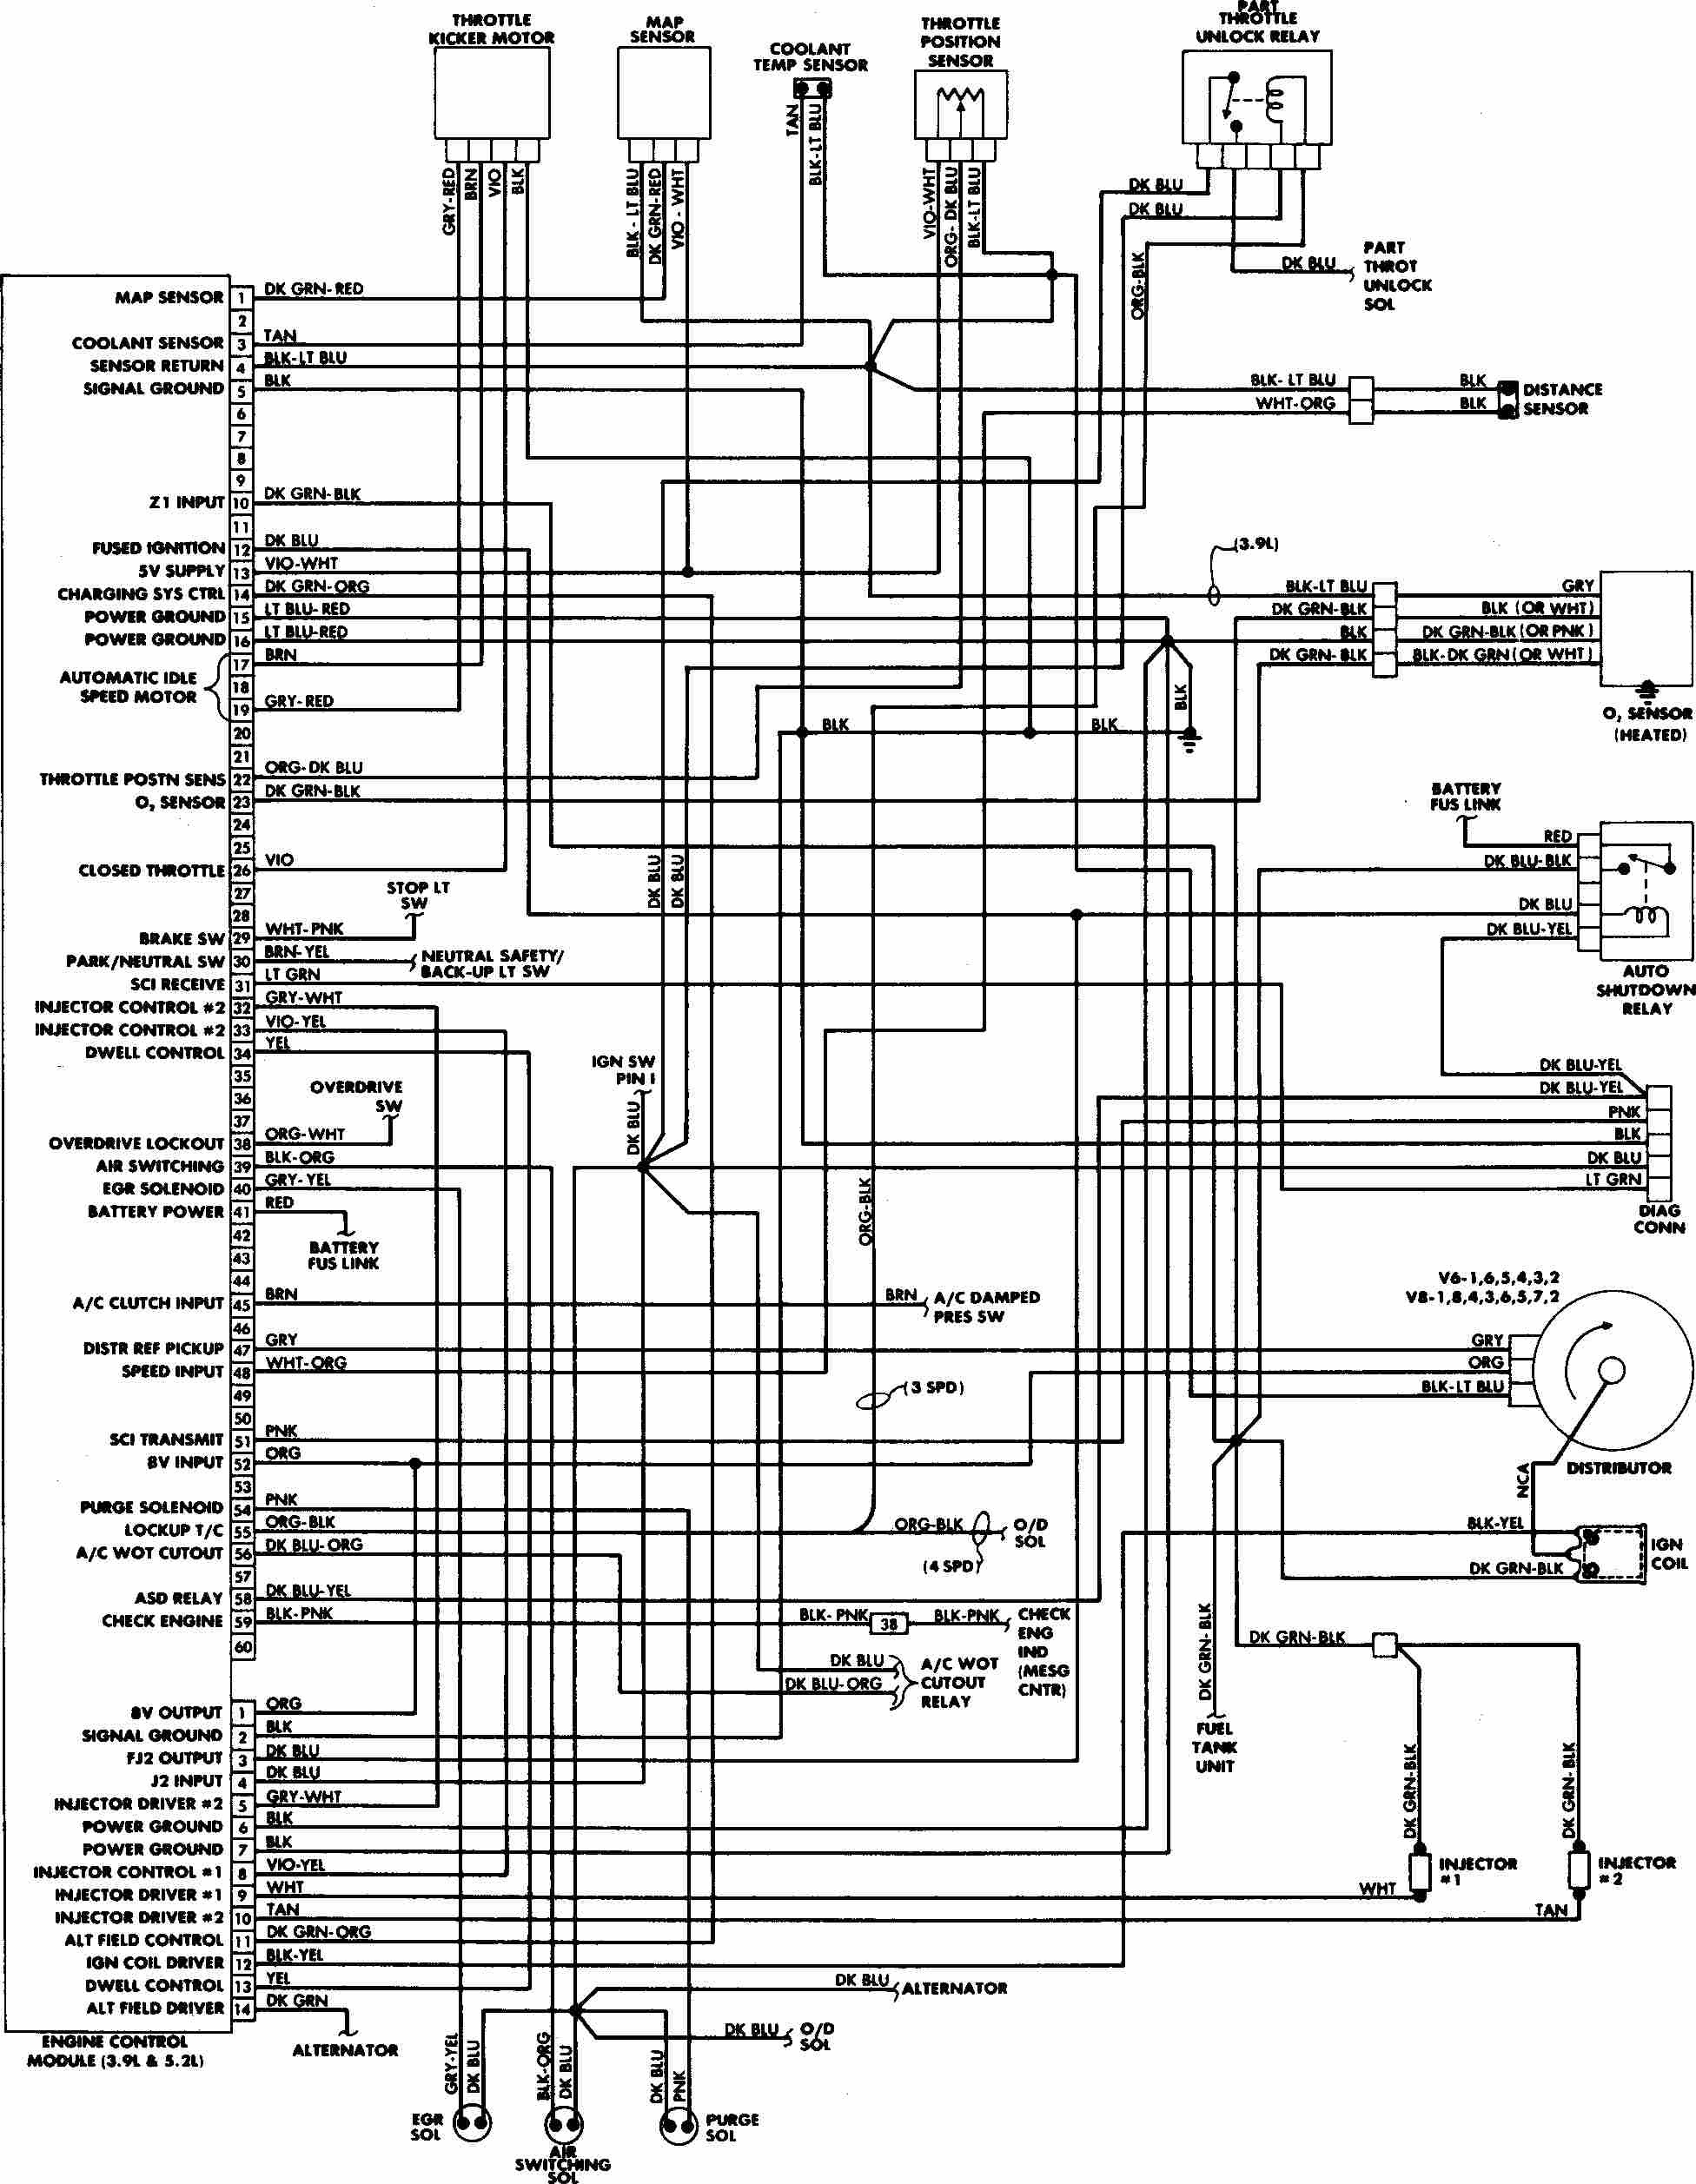 wiring diagram for 1996 chevrolet z71